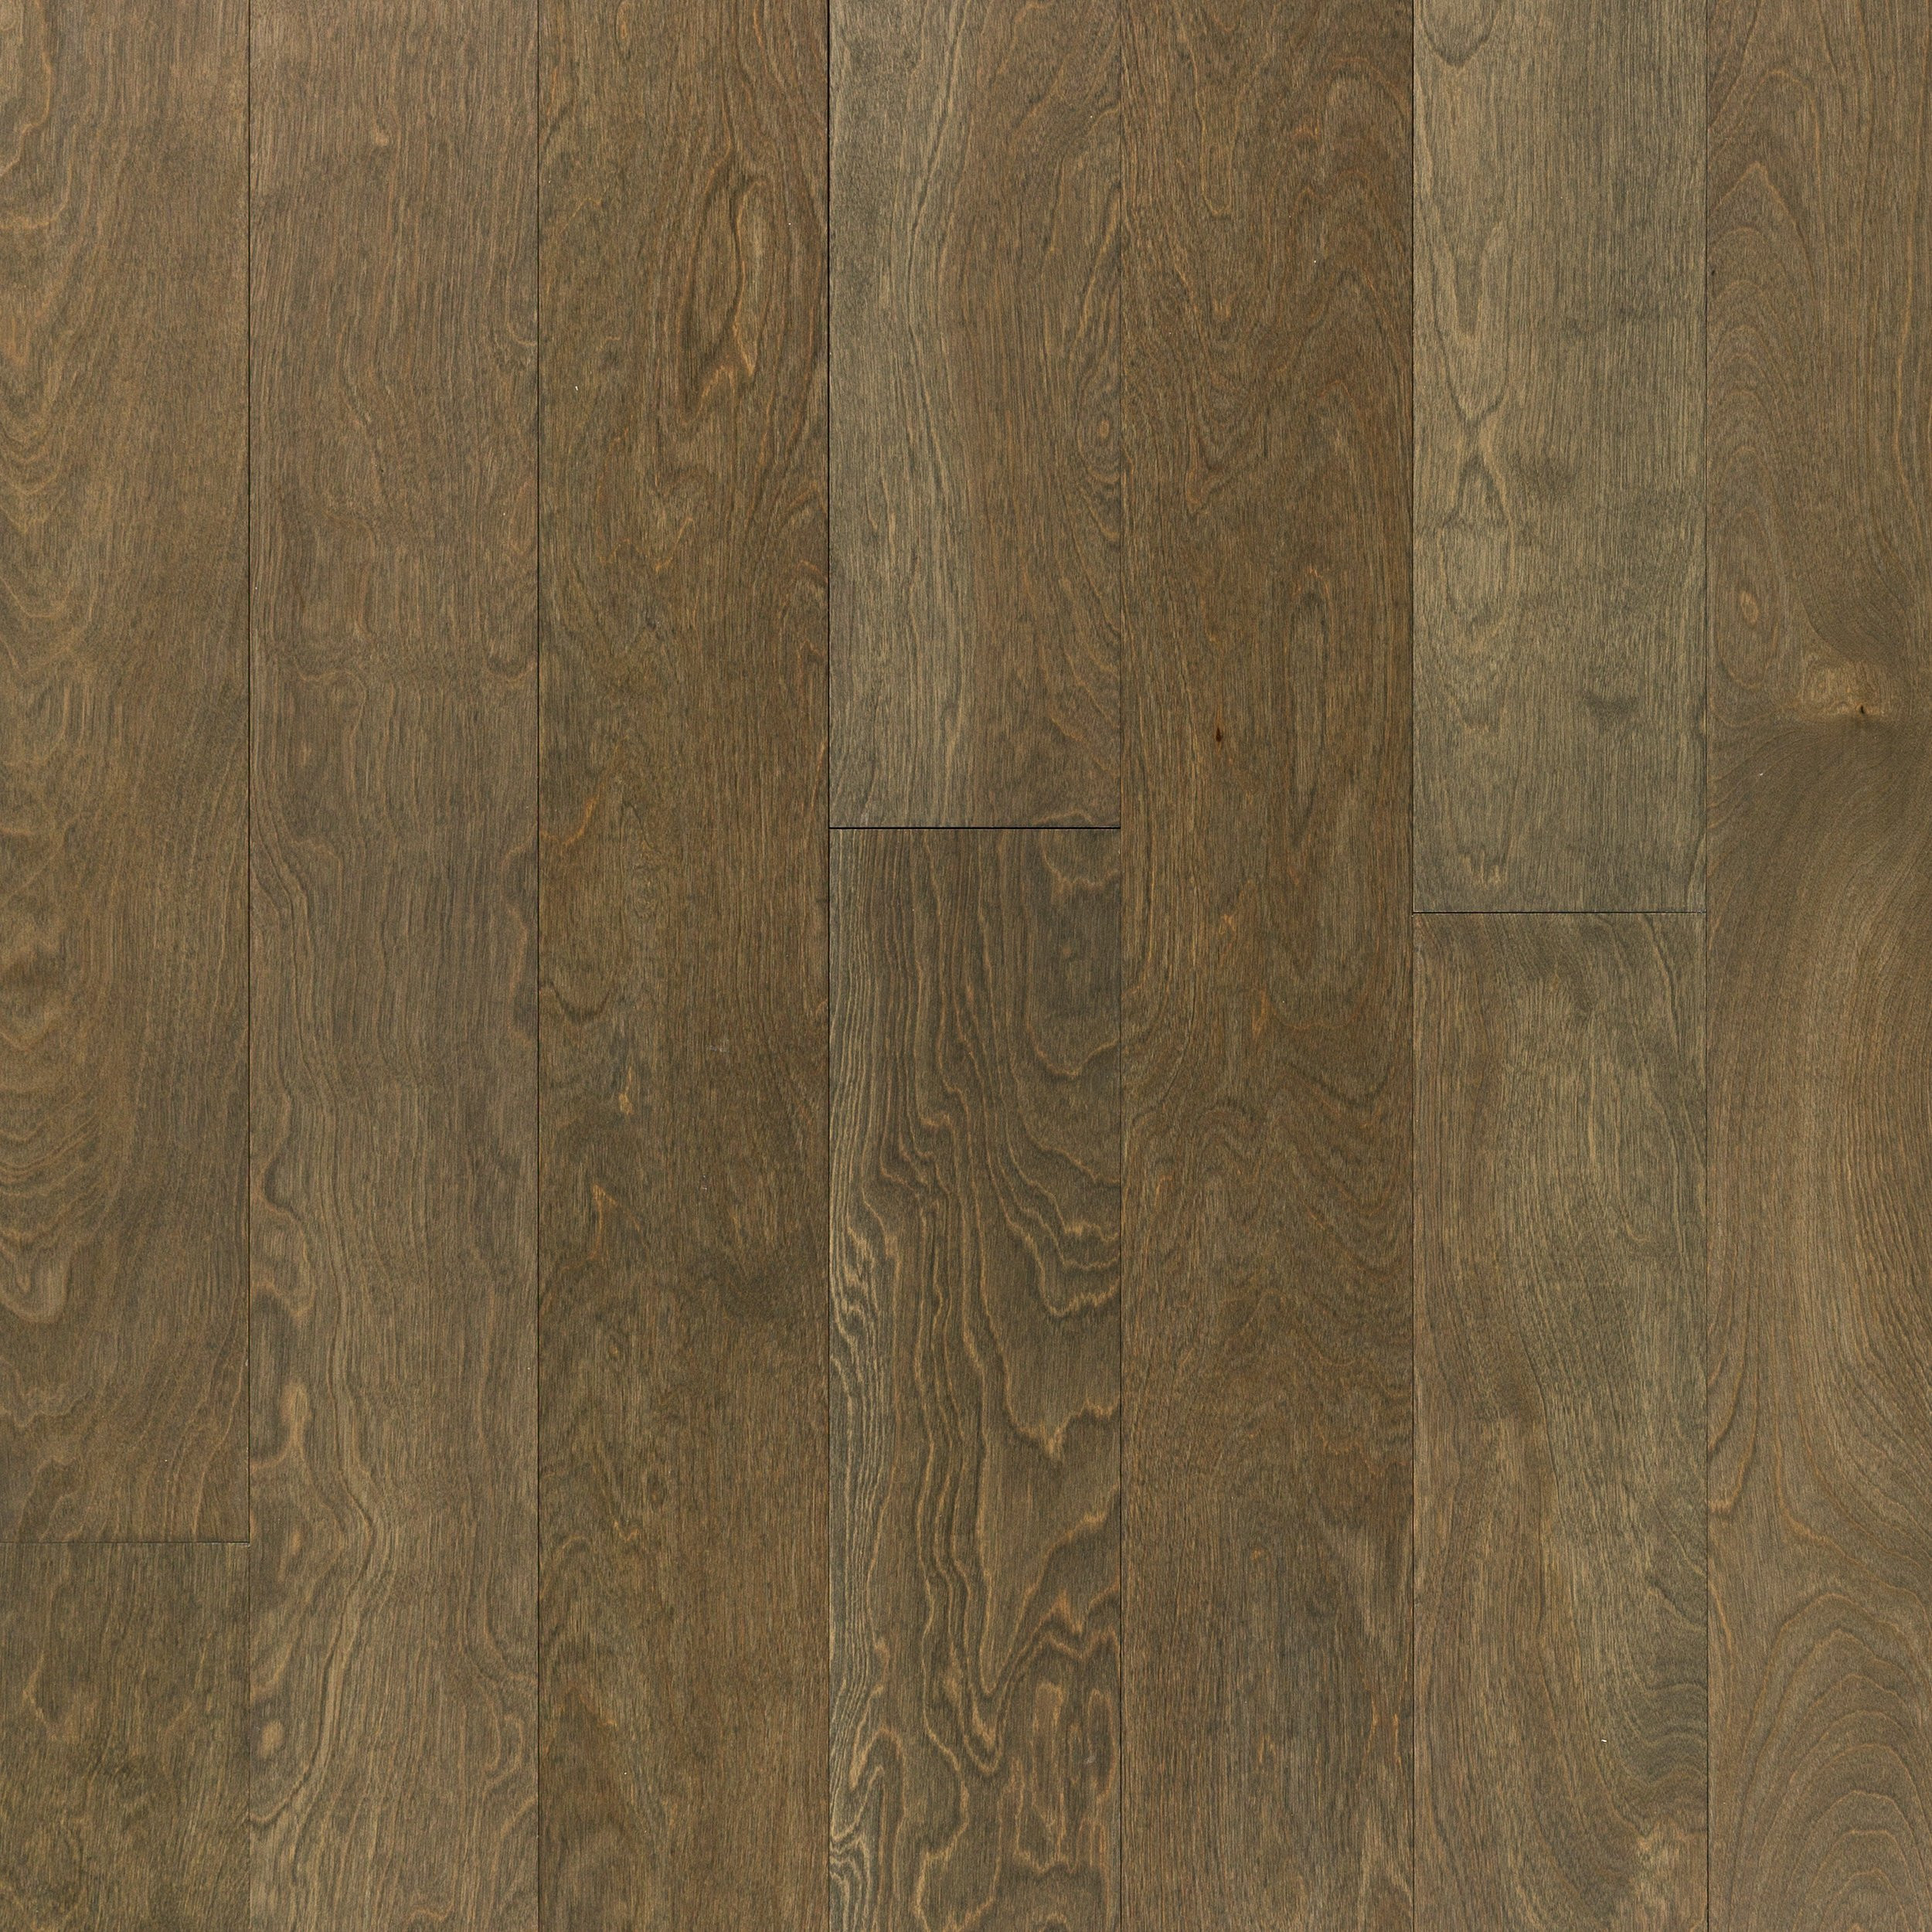 wingwood hand scraped hardwood flooring of birch wood flooring floor decor throughout wingwood birch gray smooth tongue and groove engineered hardwood